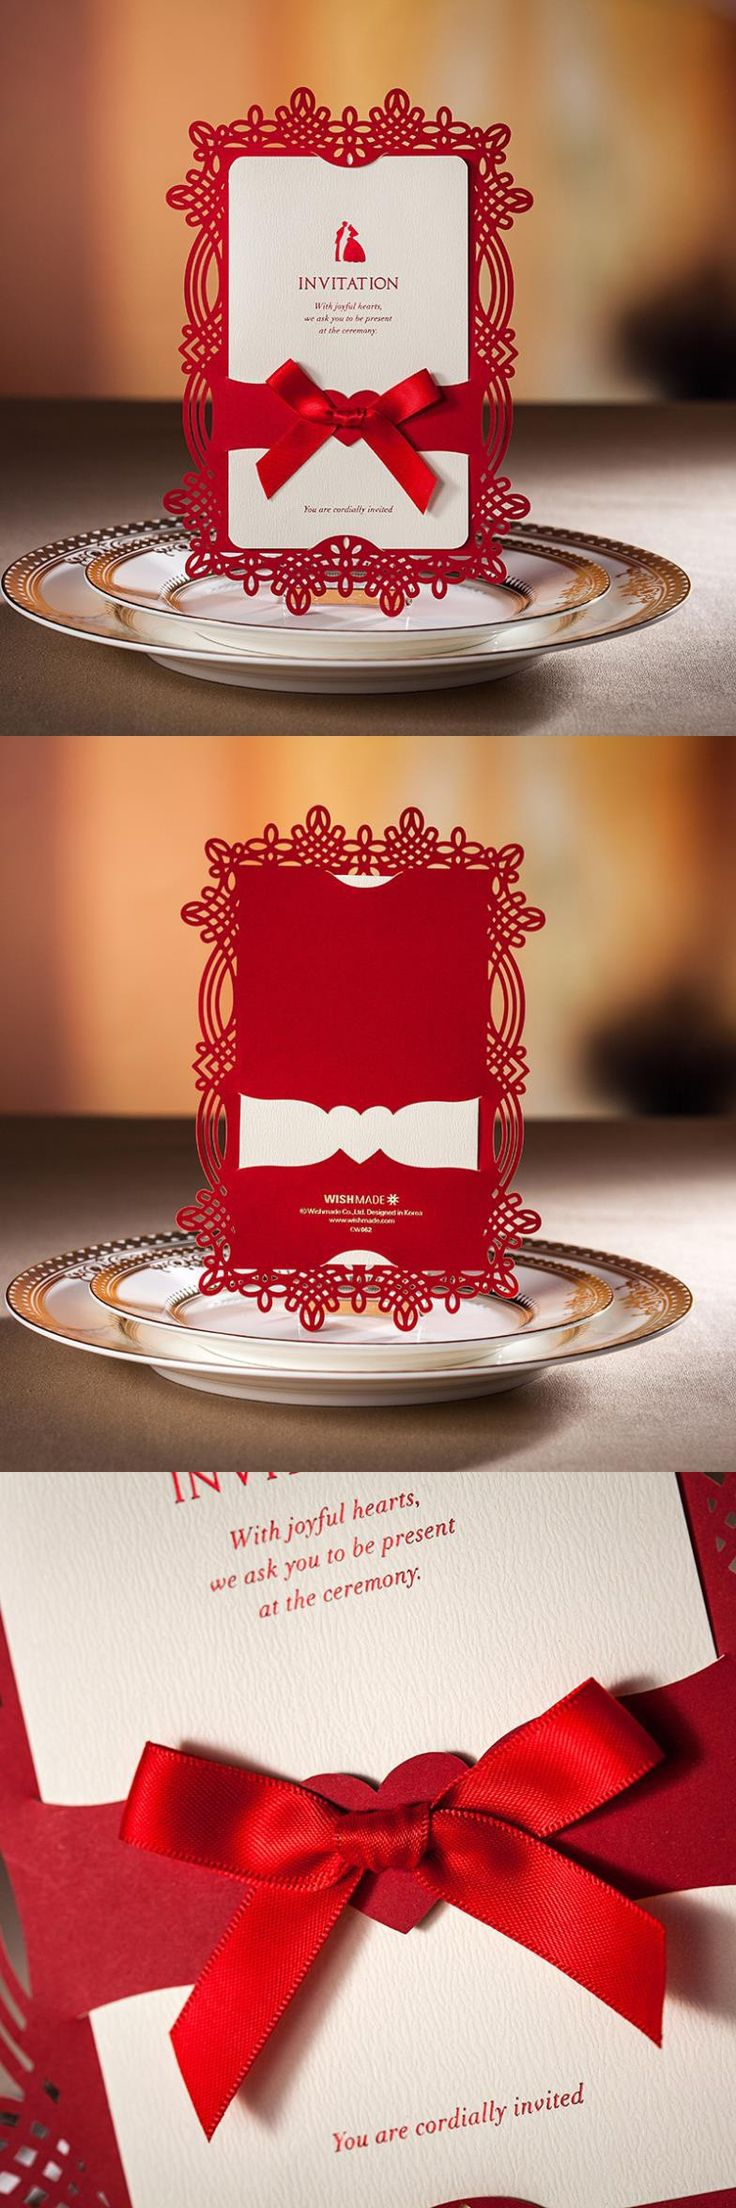 42 best images about Invitation Ideas on Pinterest | Wedding ...